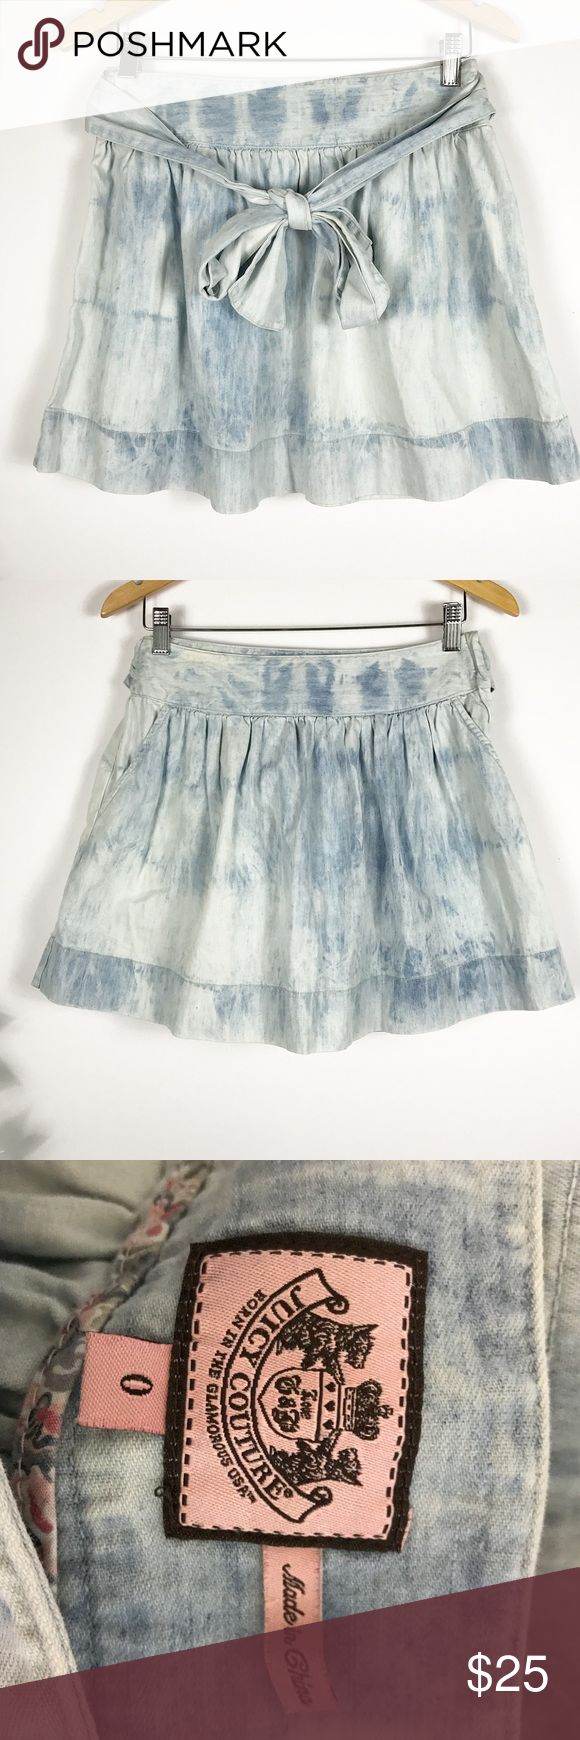 """JUICY COUTURE ACID WASH BOW TIE DENIM SKATER SKIRT JUICY COUTURE ACID WASH BOW TIE DENIM SKATER SKIRT. Side pockets! Perfect condition! Measures approx 14.5""""w 16""""long laying flat size 0 Juicy Couture Skirts Circle & Skater"""